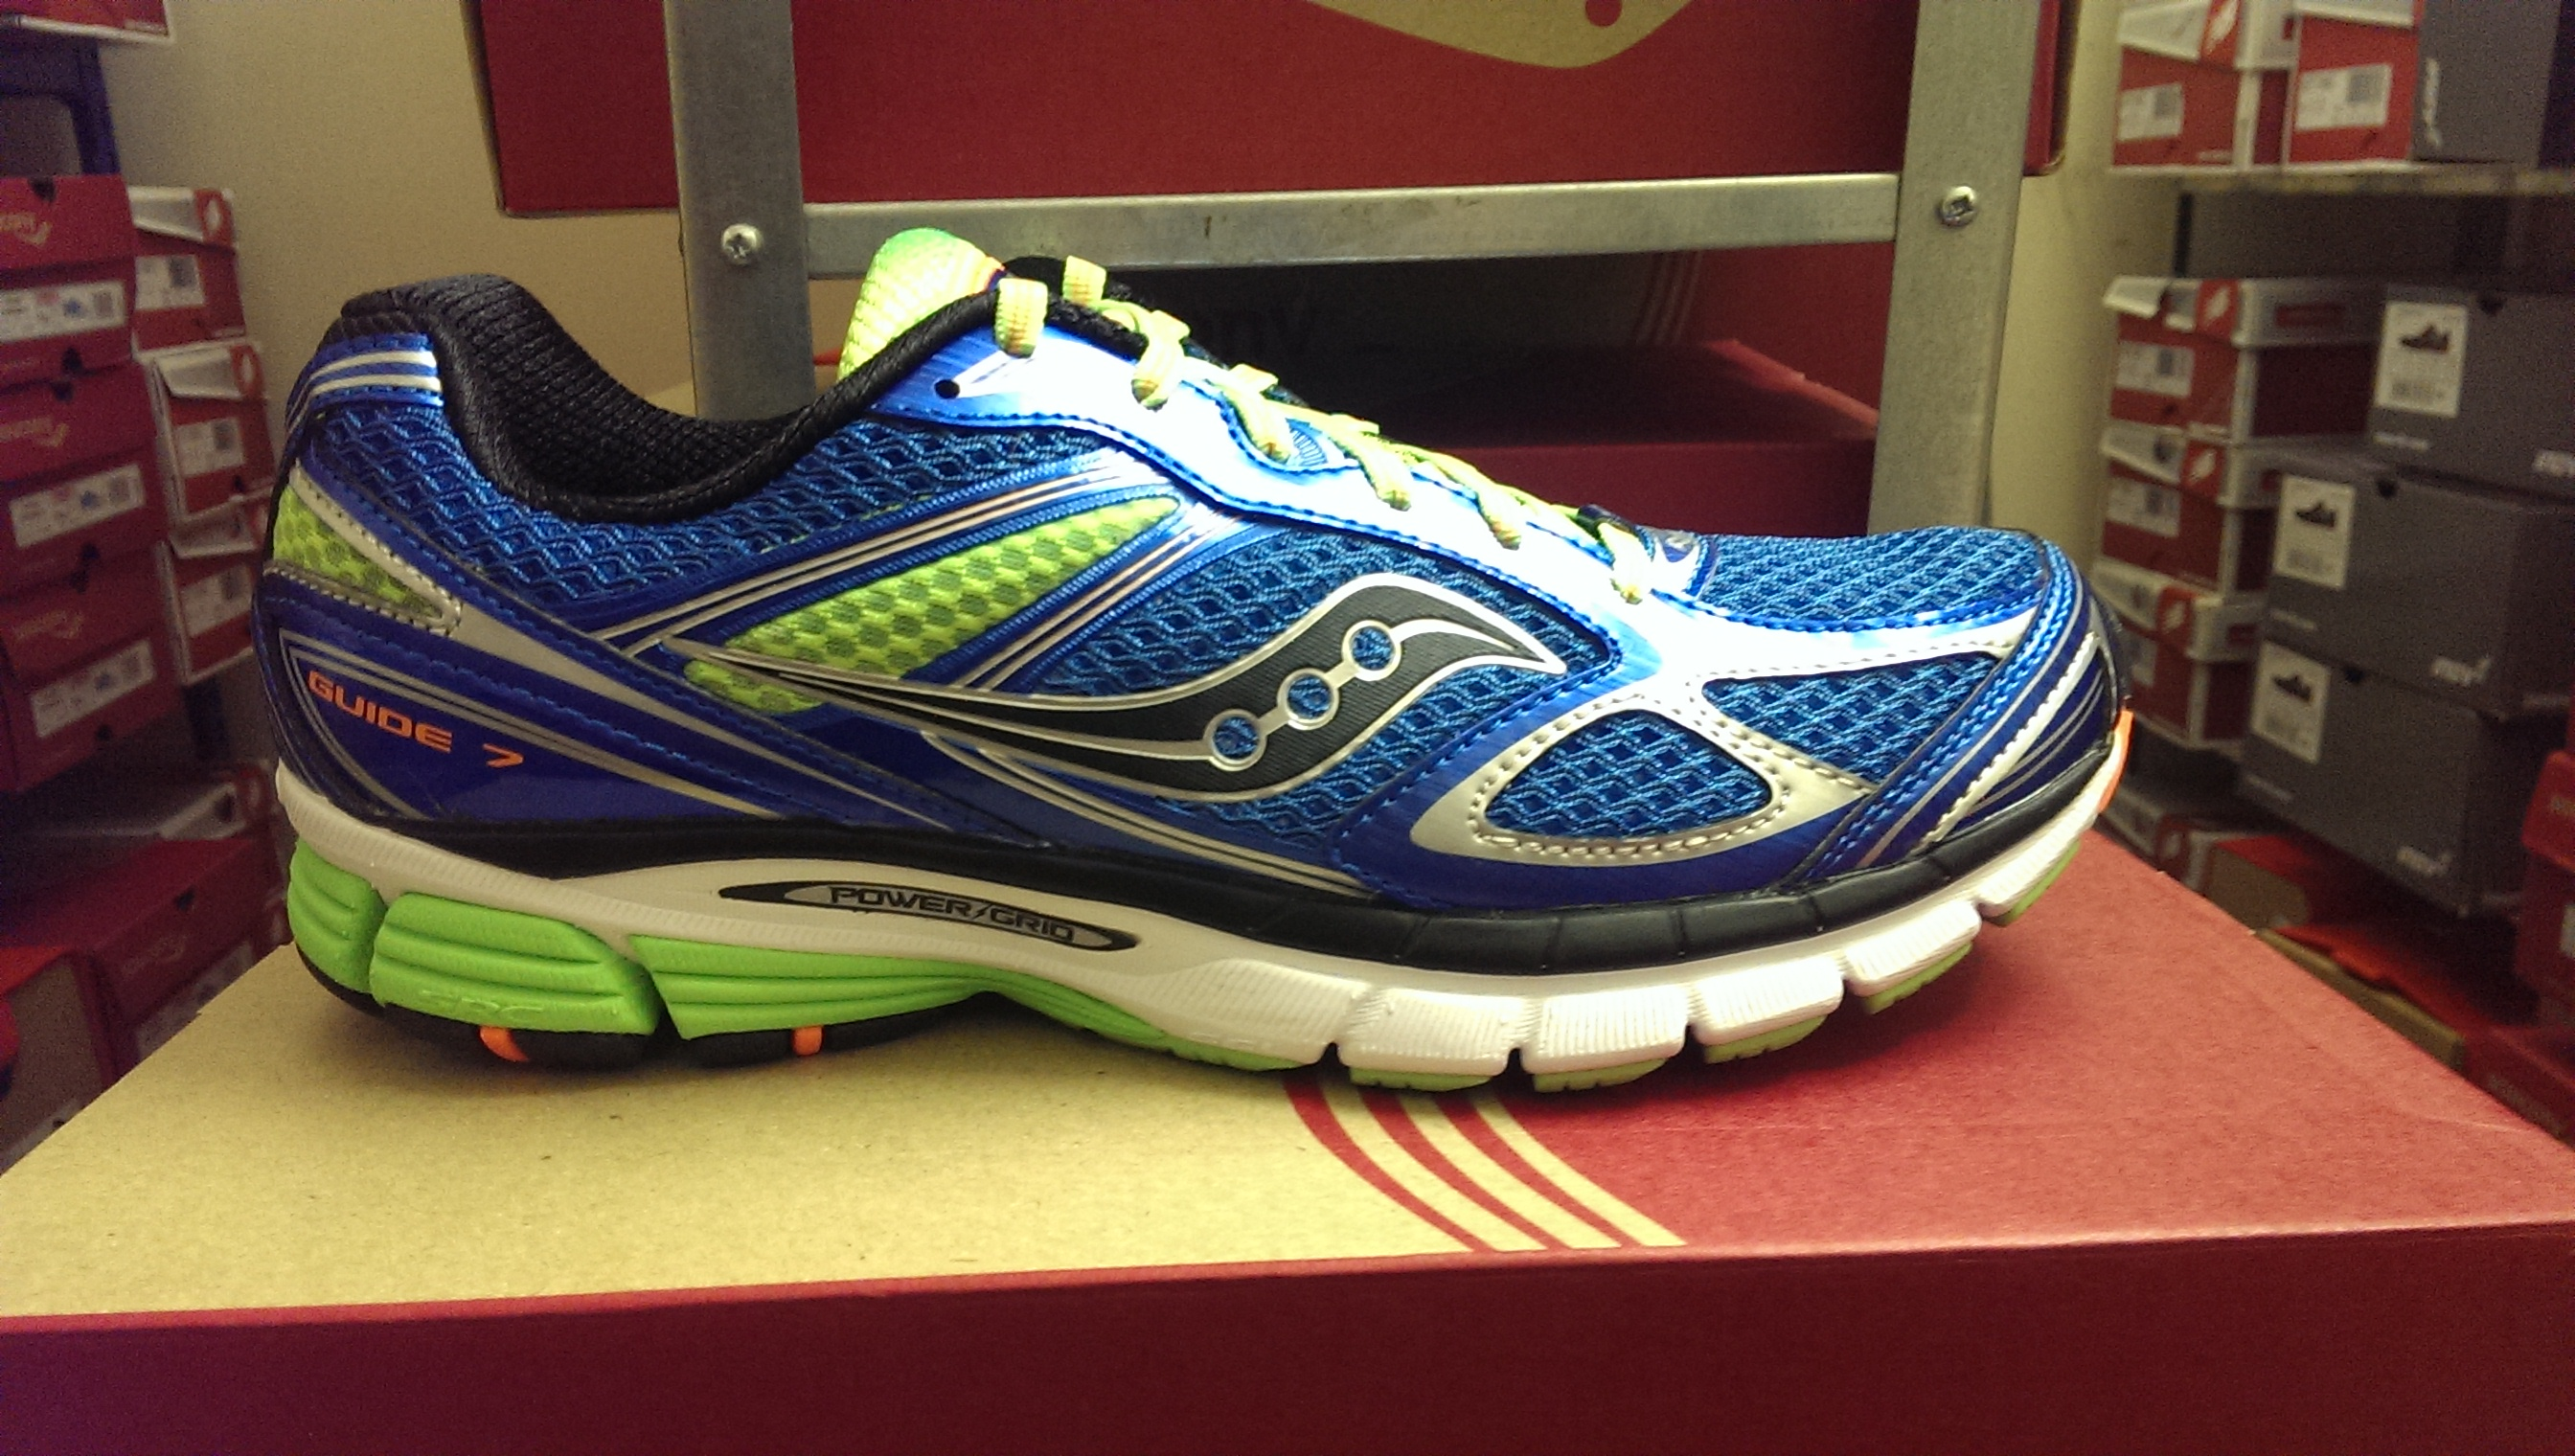 The Running Shoe Review :: Saucony PowerGrid Guide 7